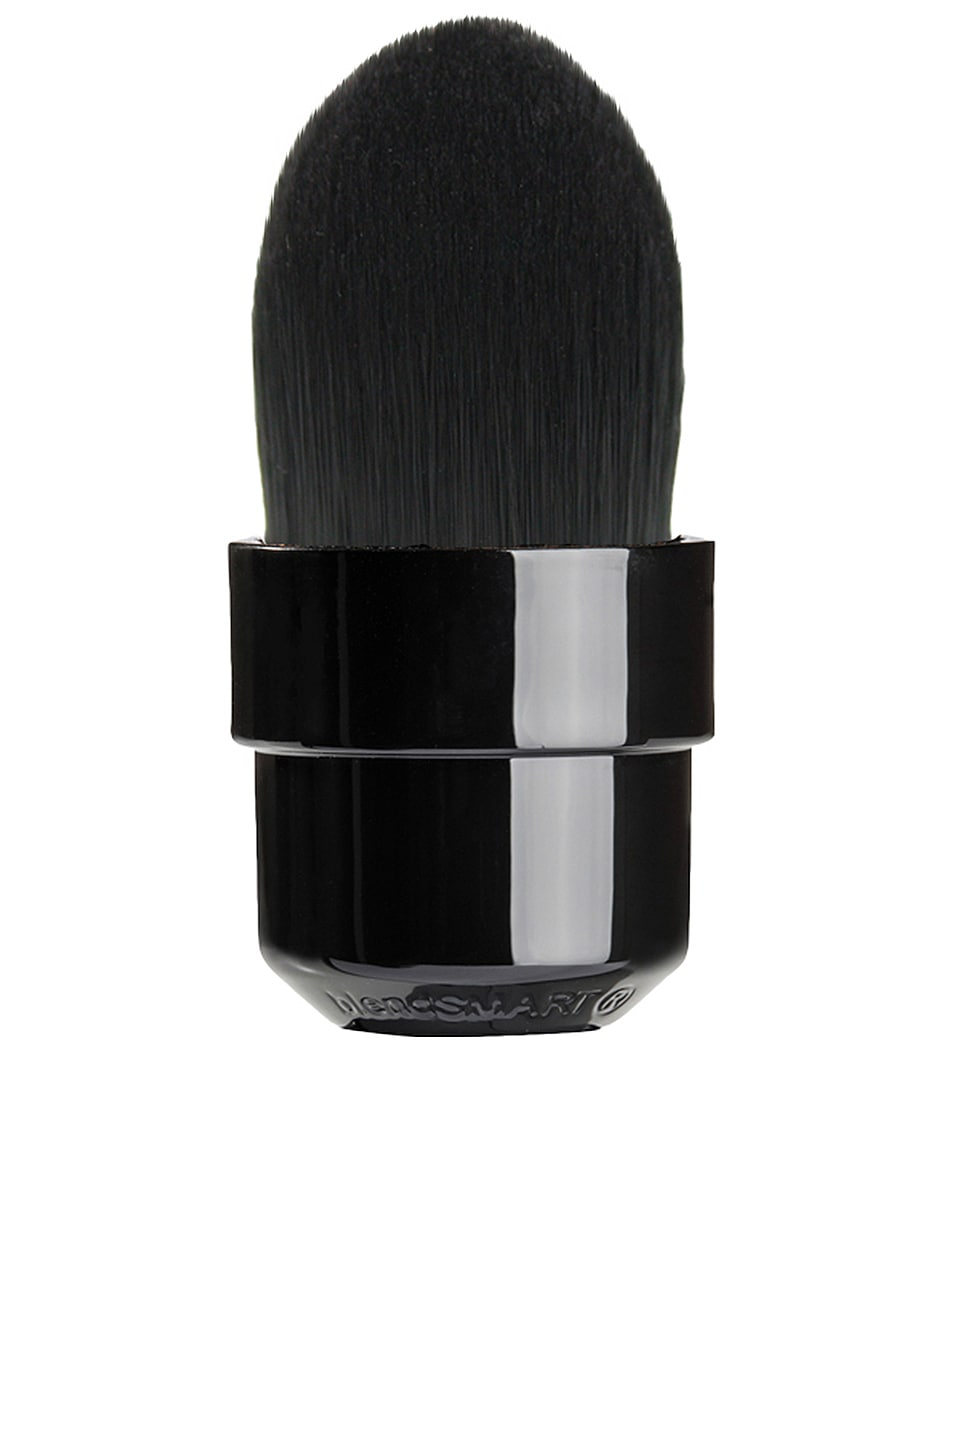 blendSMART blendSMART2 Definer Brush Head